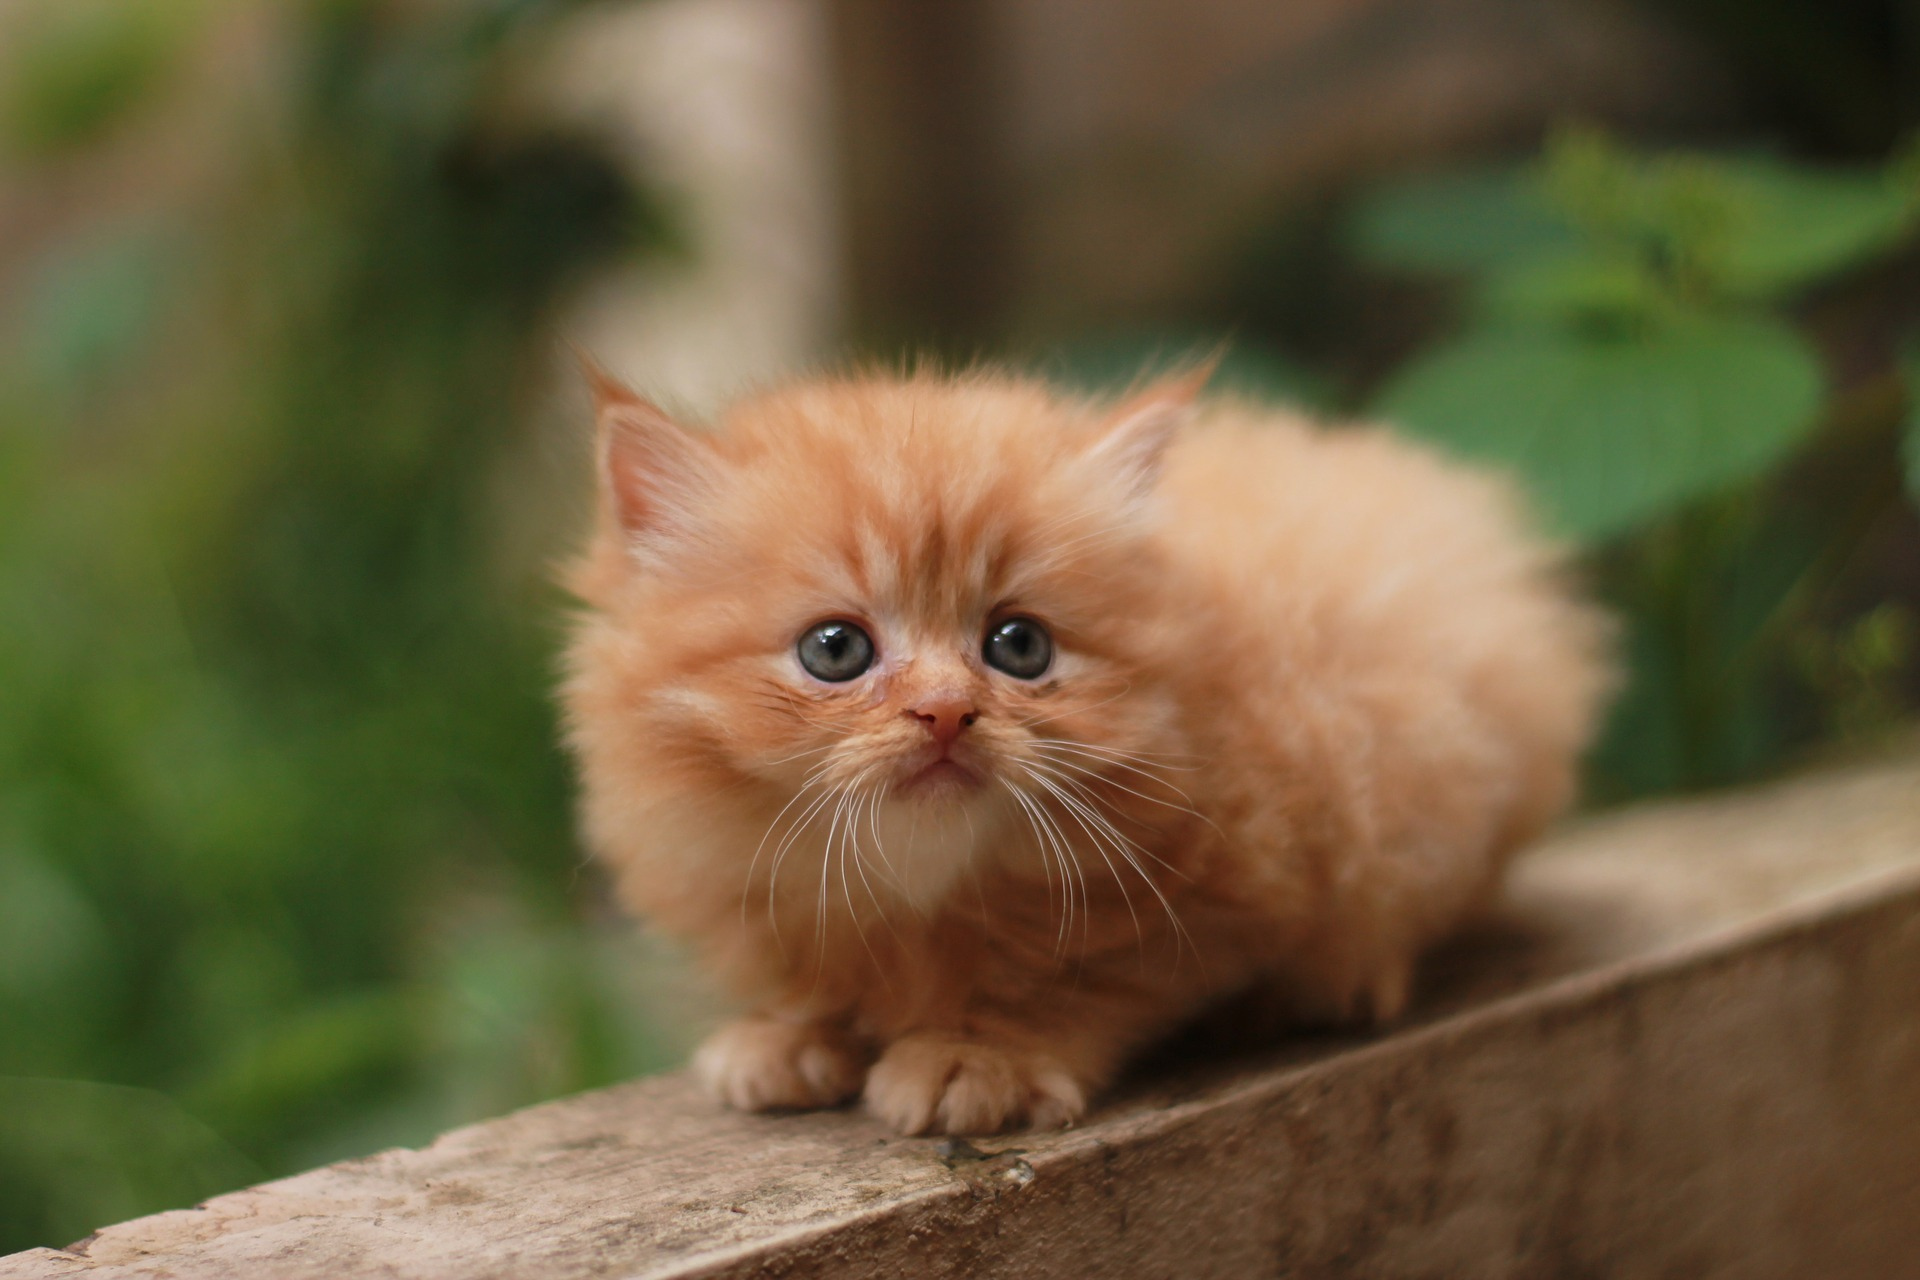 Orange tabby Persian kitten with blue eyes in article about cat headaches